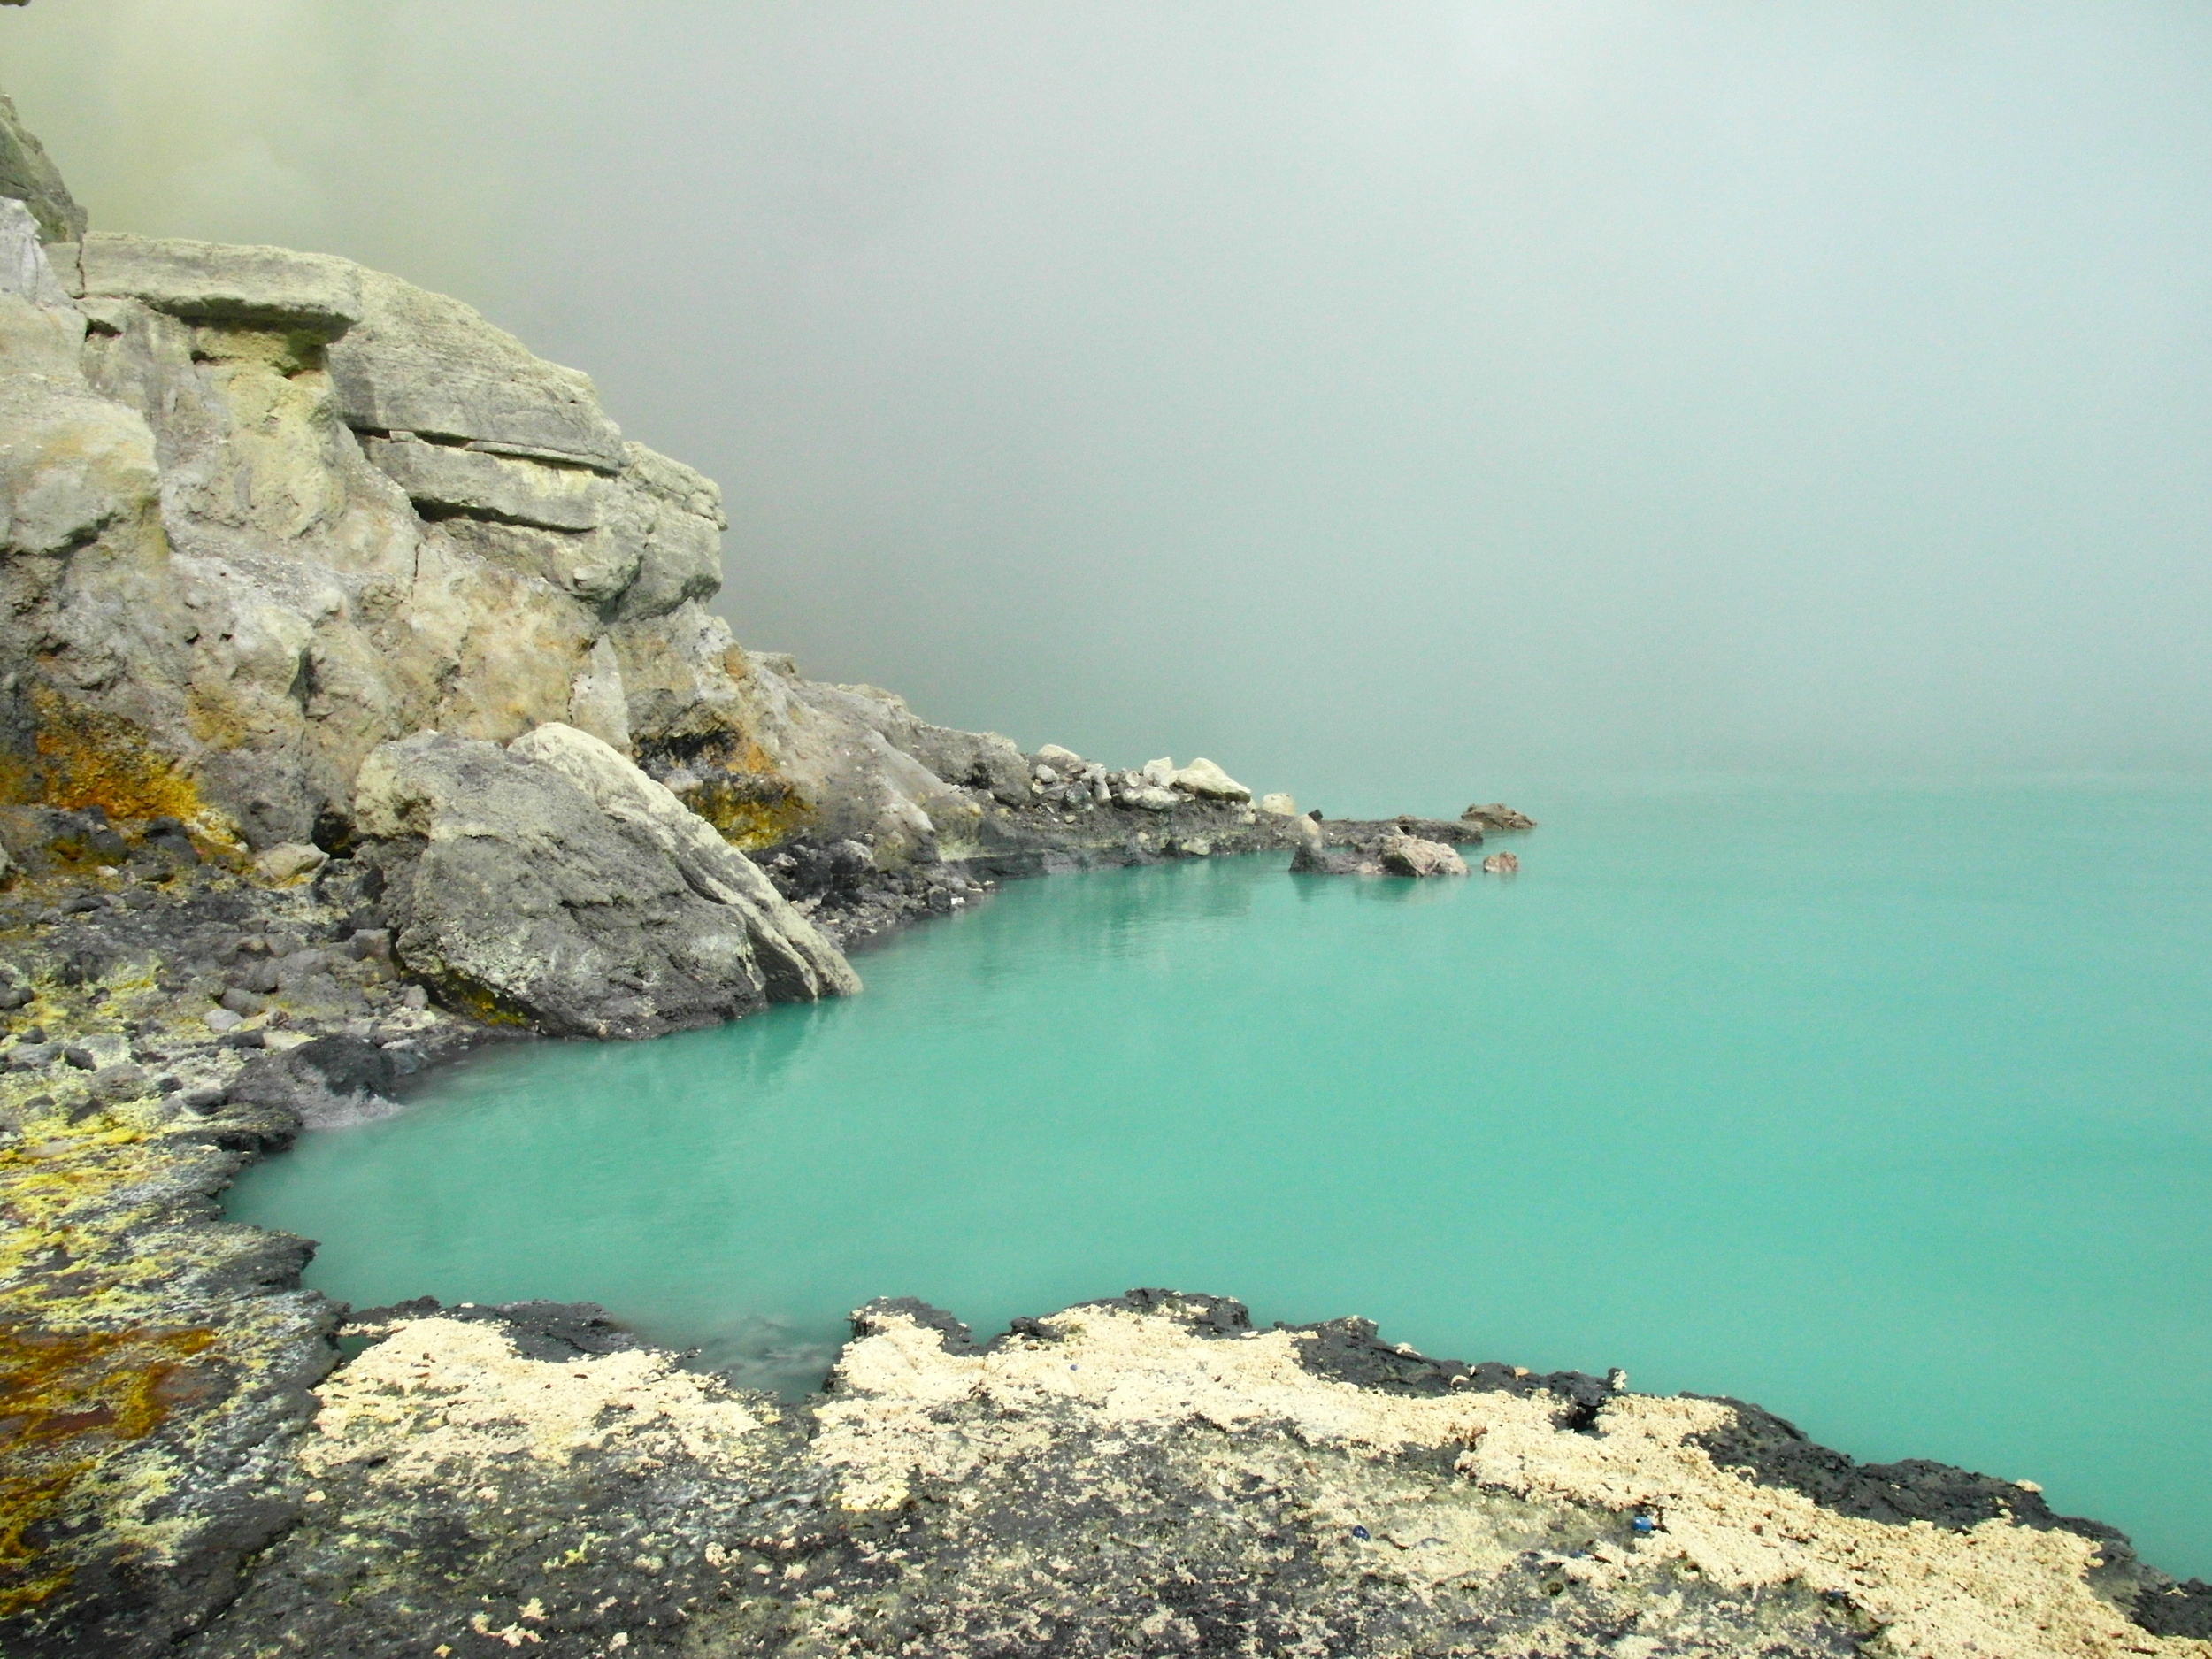 The turquoise of the lake seemed almost unreal.